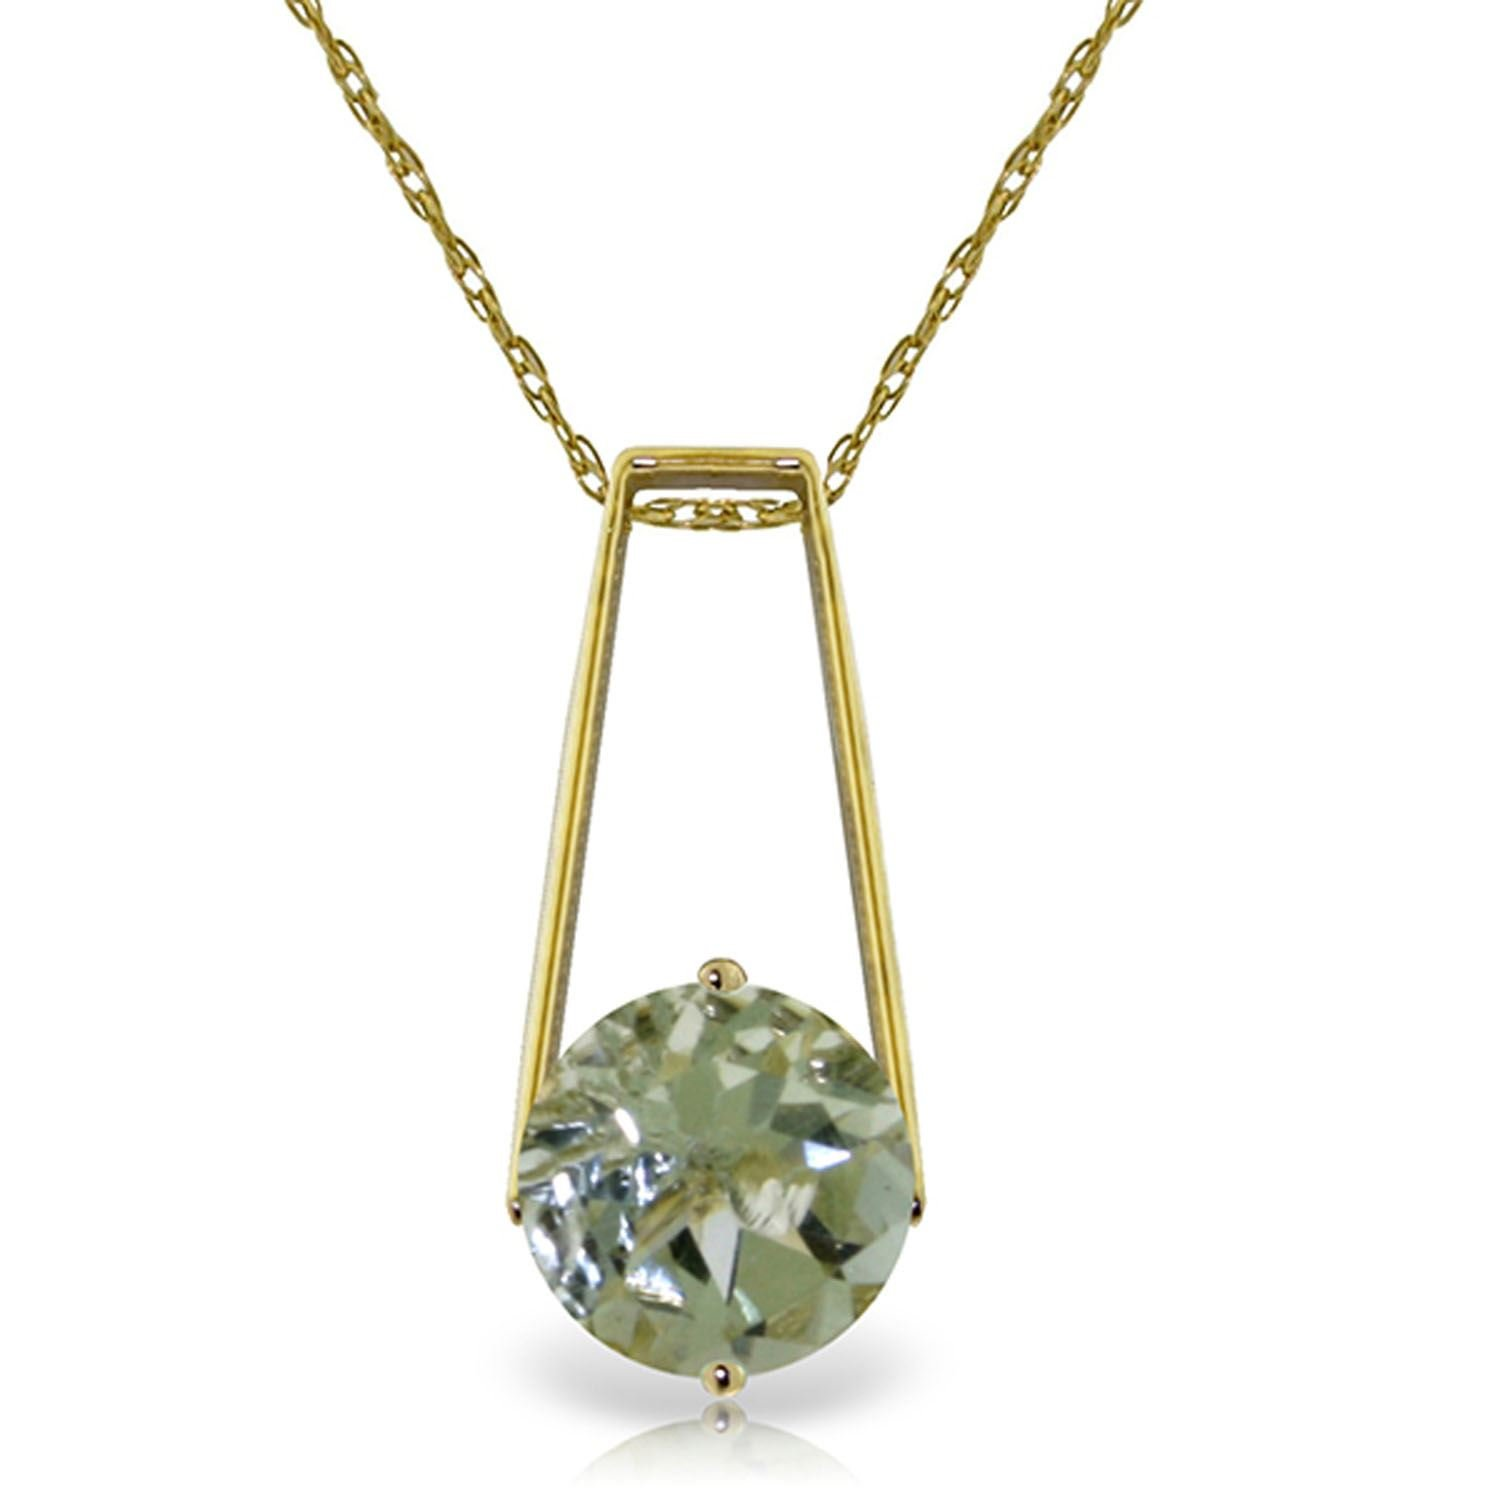 ALARRI 1.45 CTW 14K Solid Gold Boundless Moment Green Amethyst Necklace with 22 Inch Chain Length